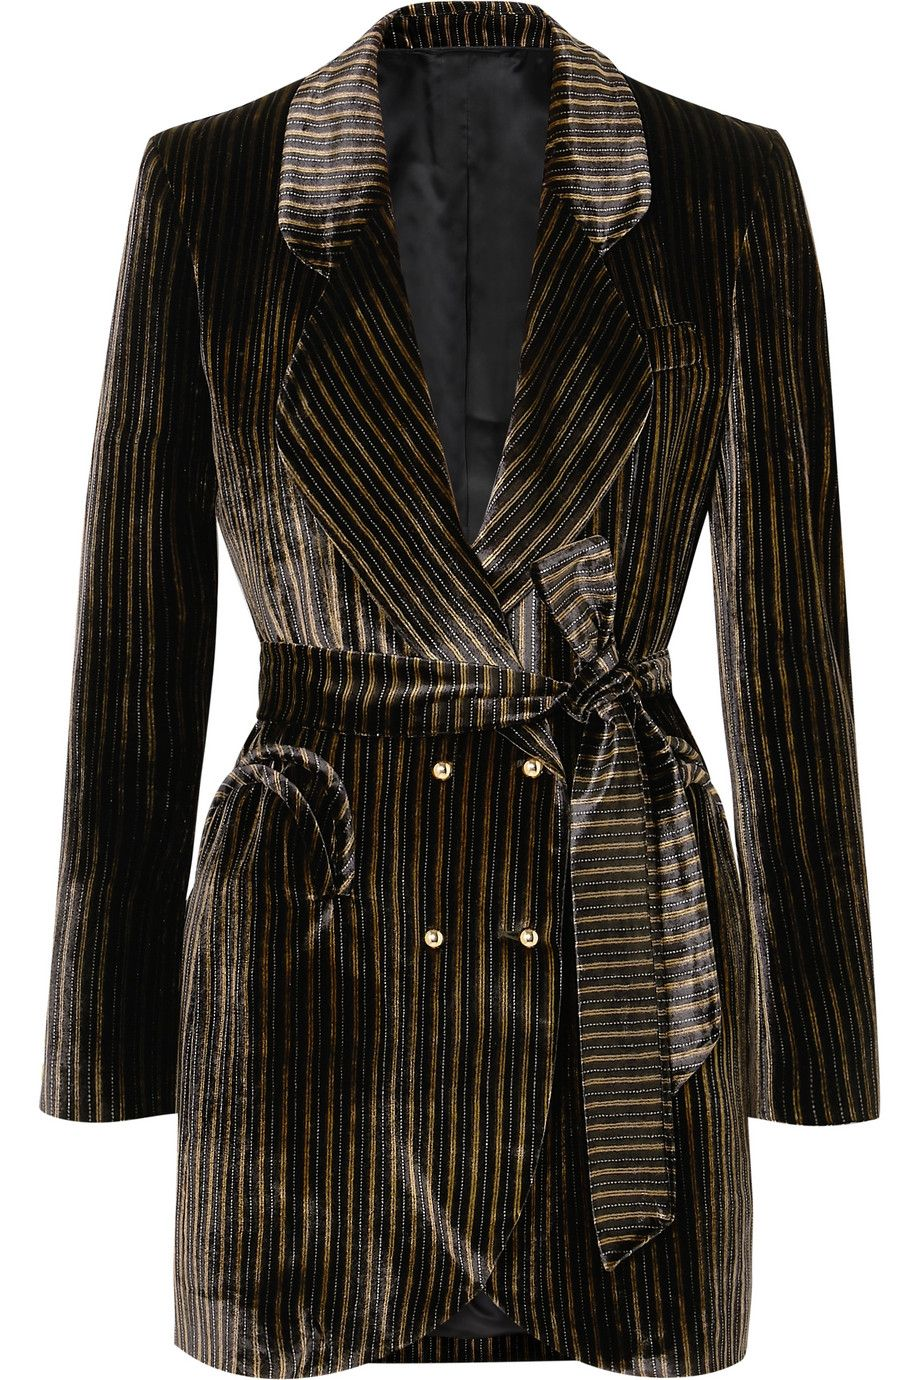 shop-blaze-milano-sunshine-velvet-striped-blazer-mini-dress